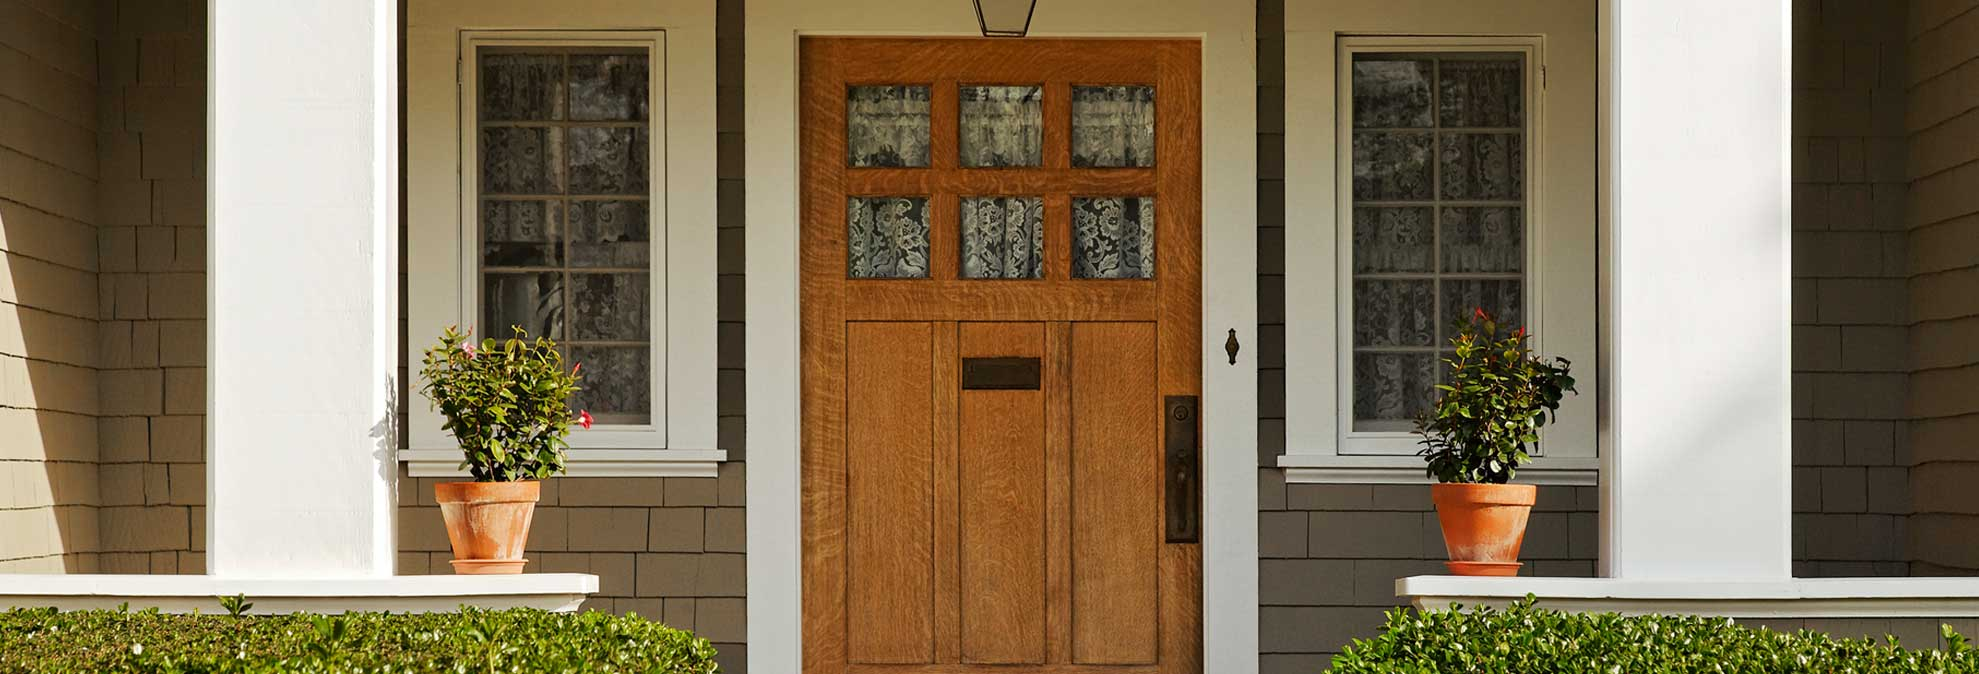 Best entrance door. How to choose a reliable and high-quality entrance door 63